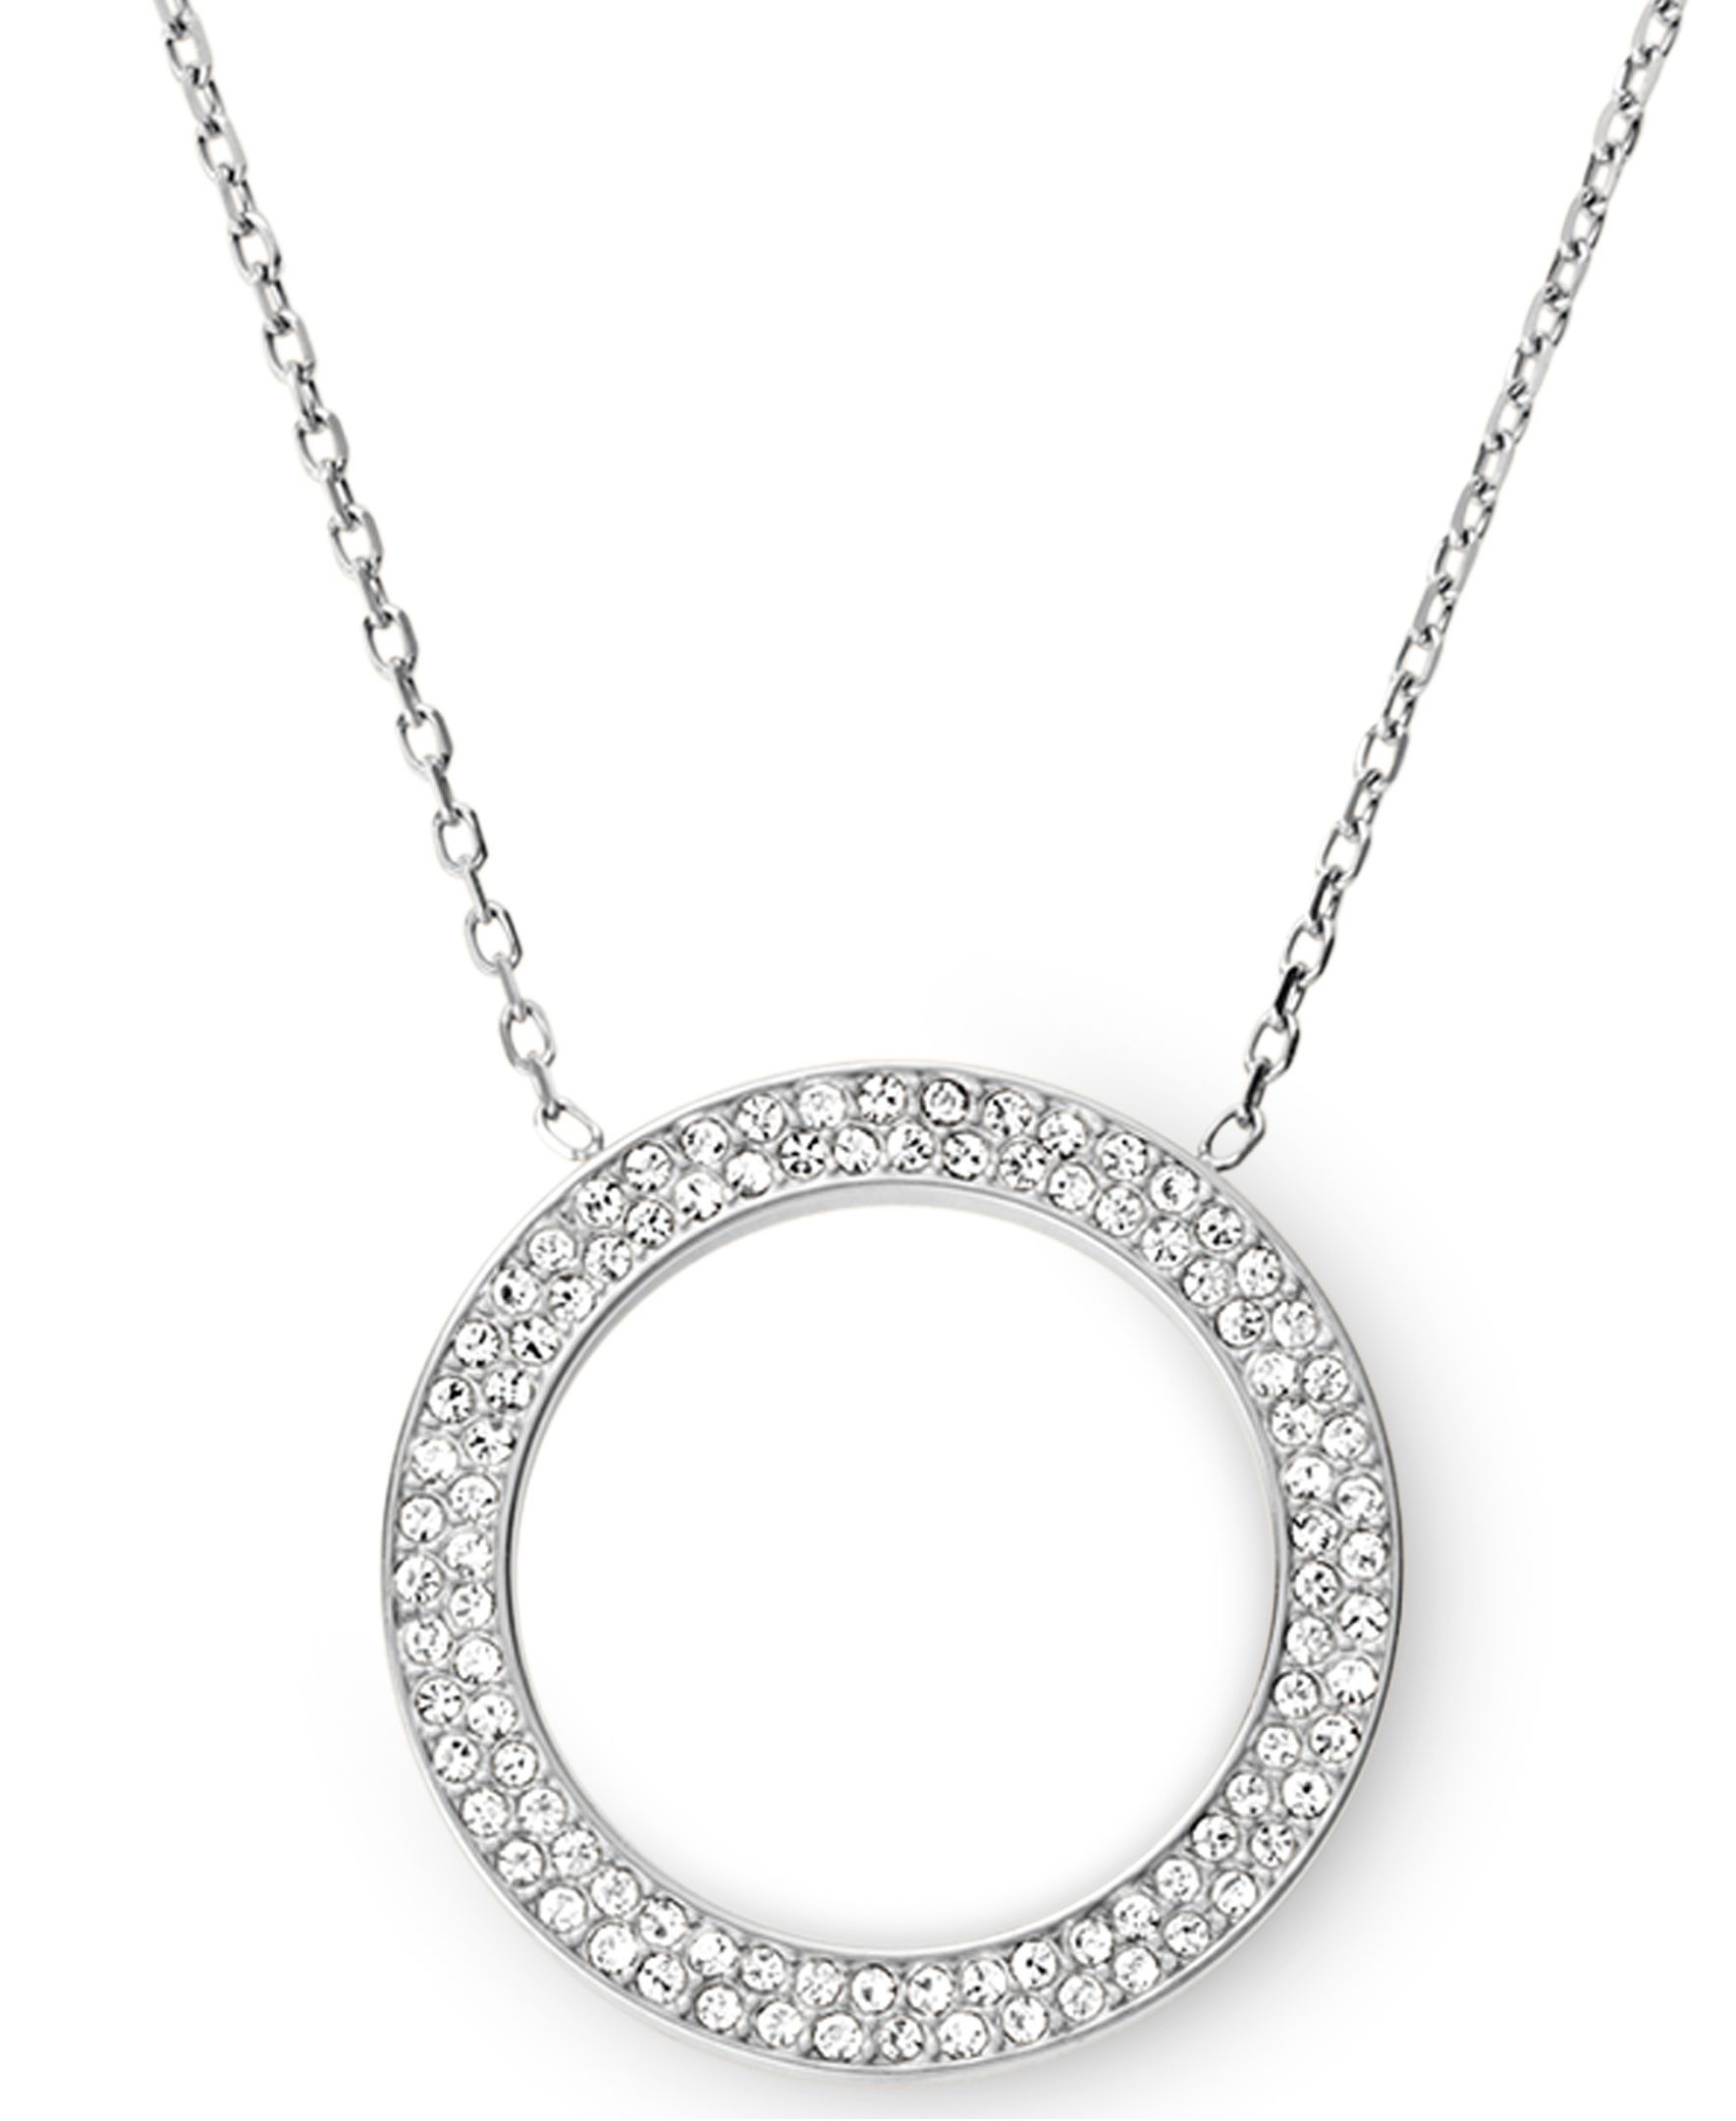 Michael Kors Brilliance Silver Pave Pendant Necklace in Metallic